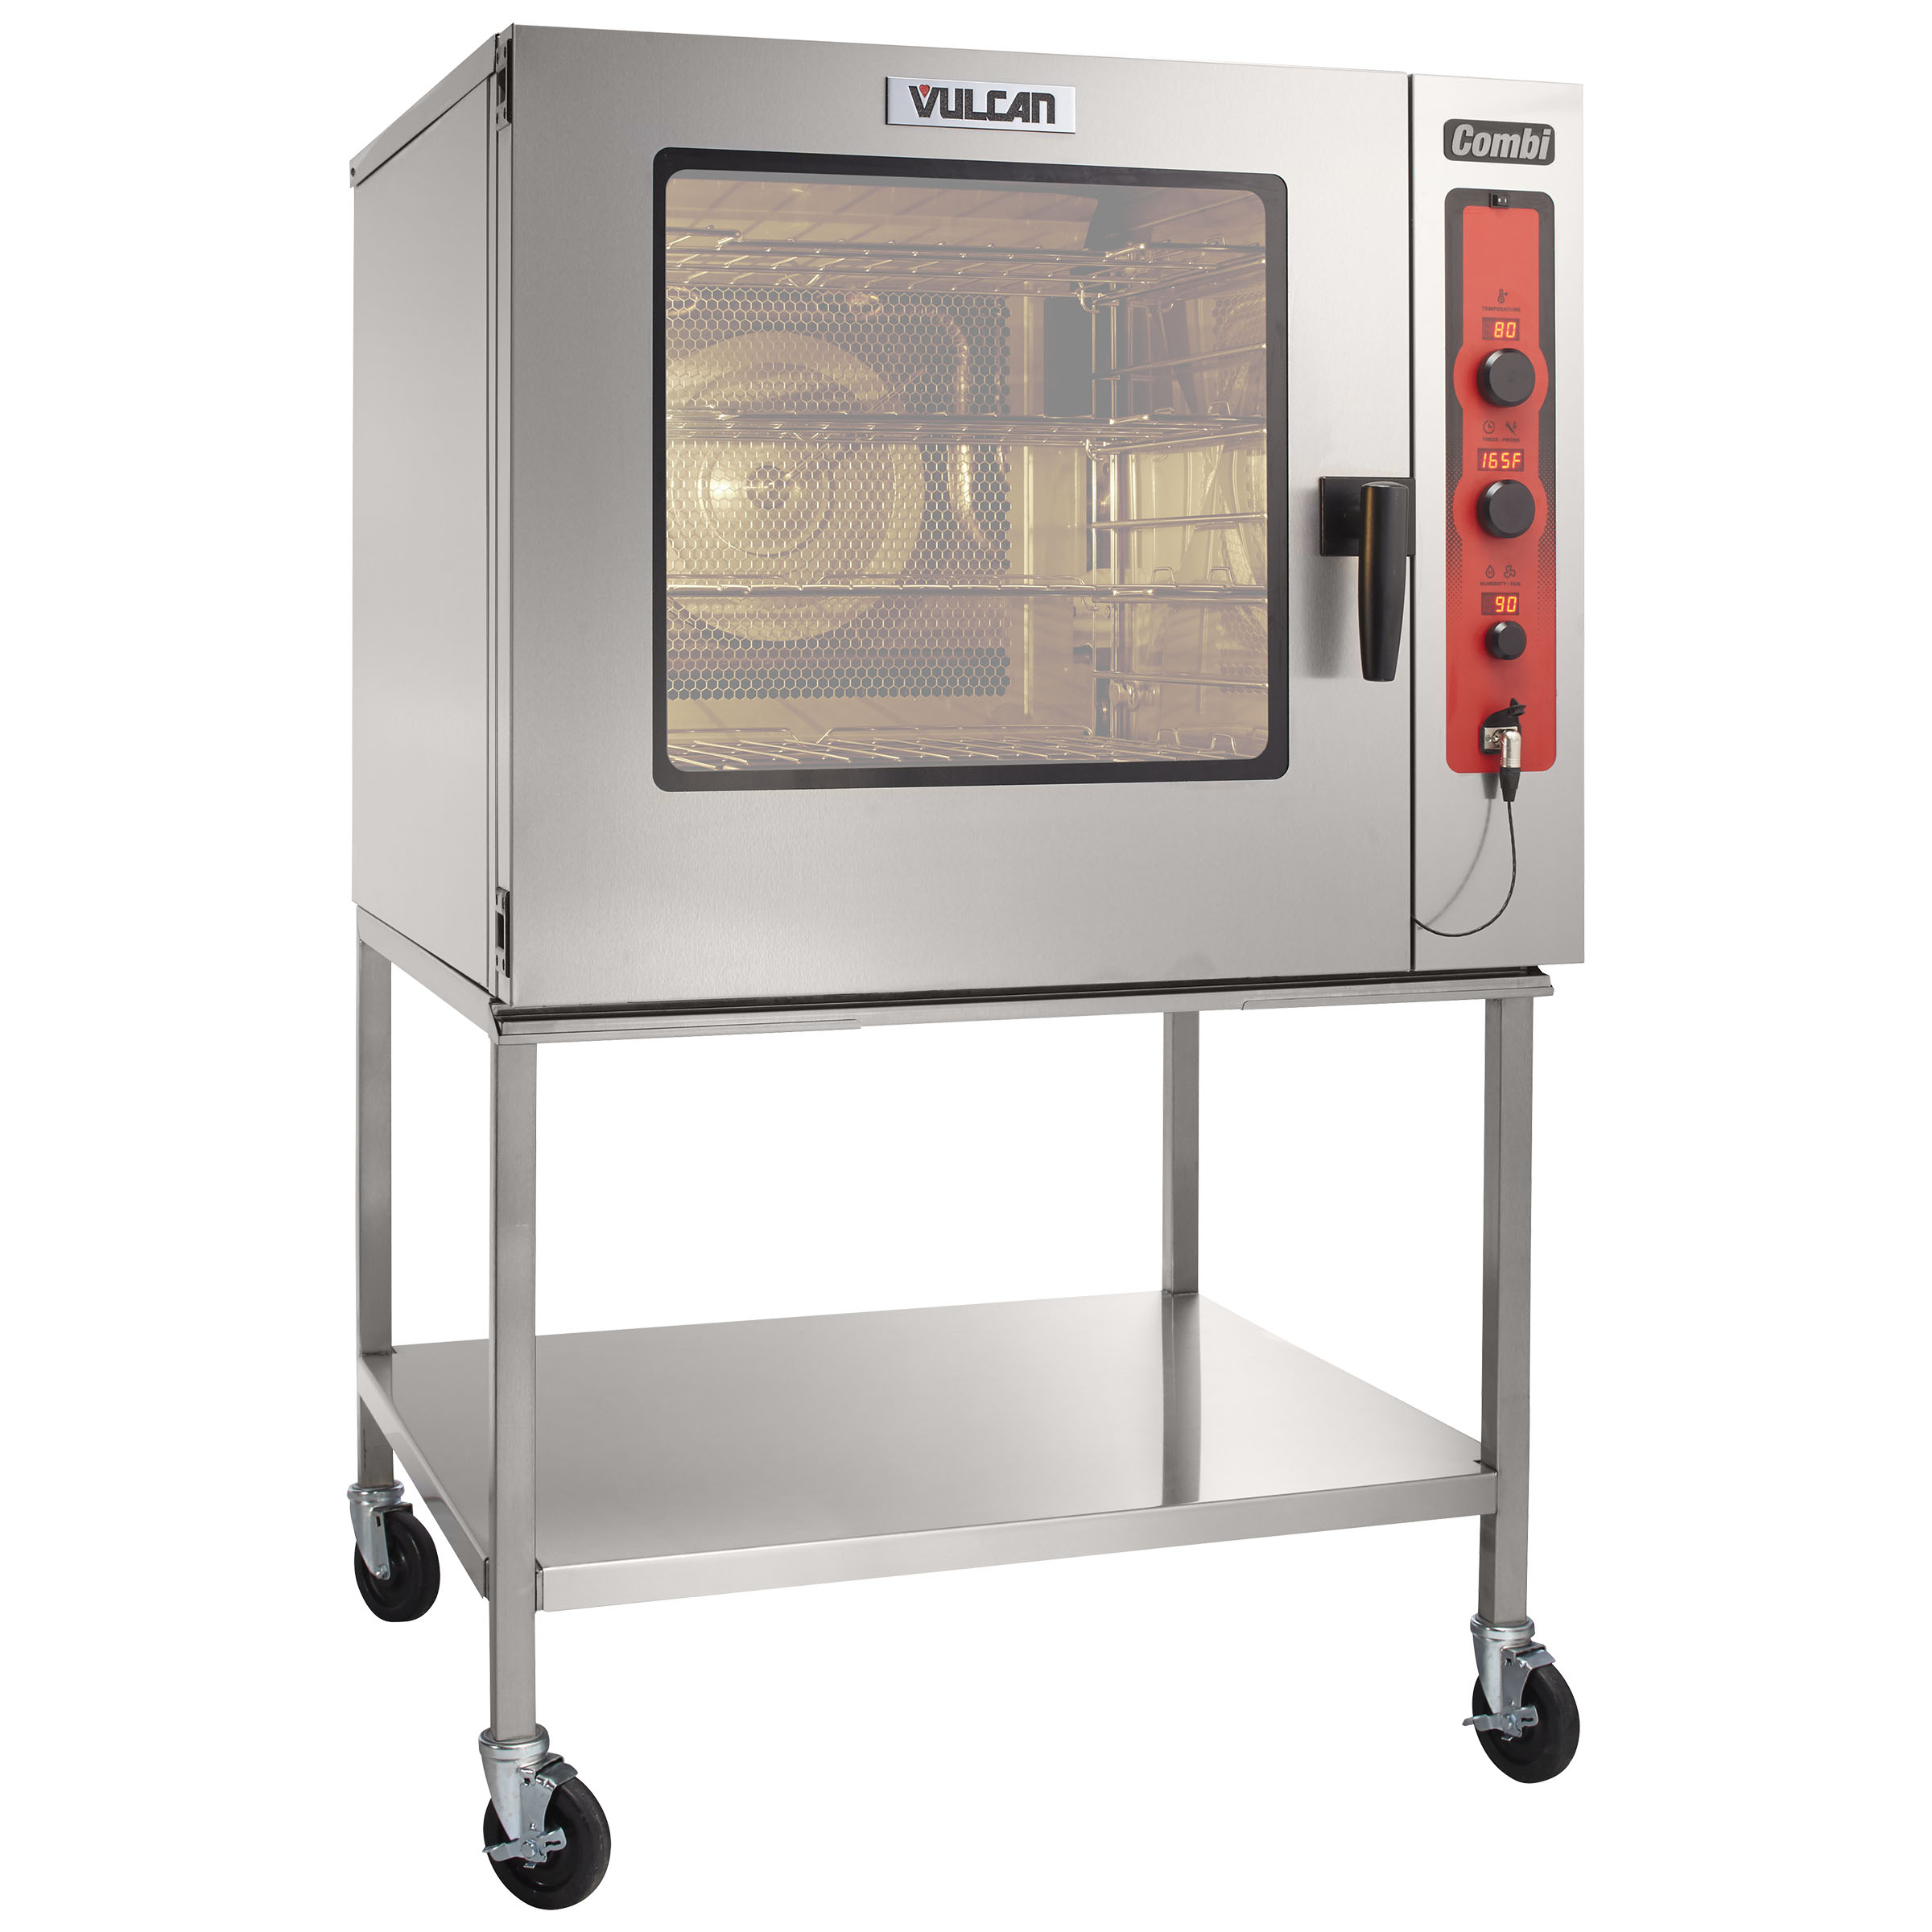 Vulcan ABC7E-240P combi oven, electric